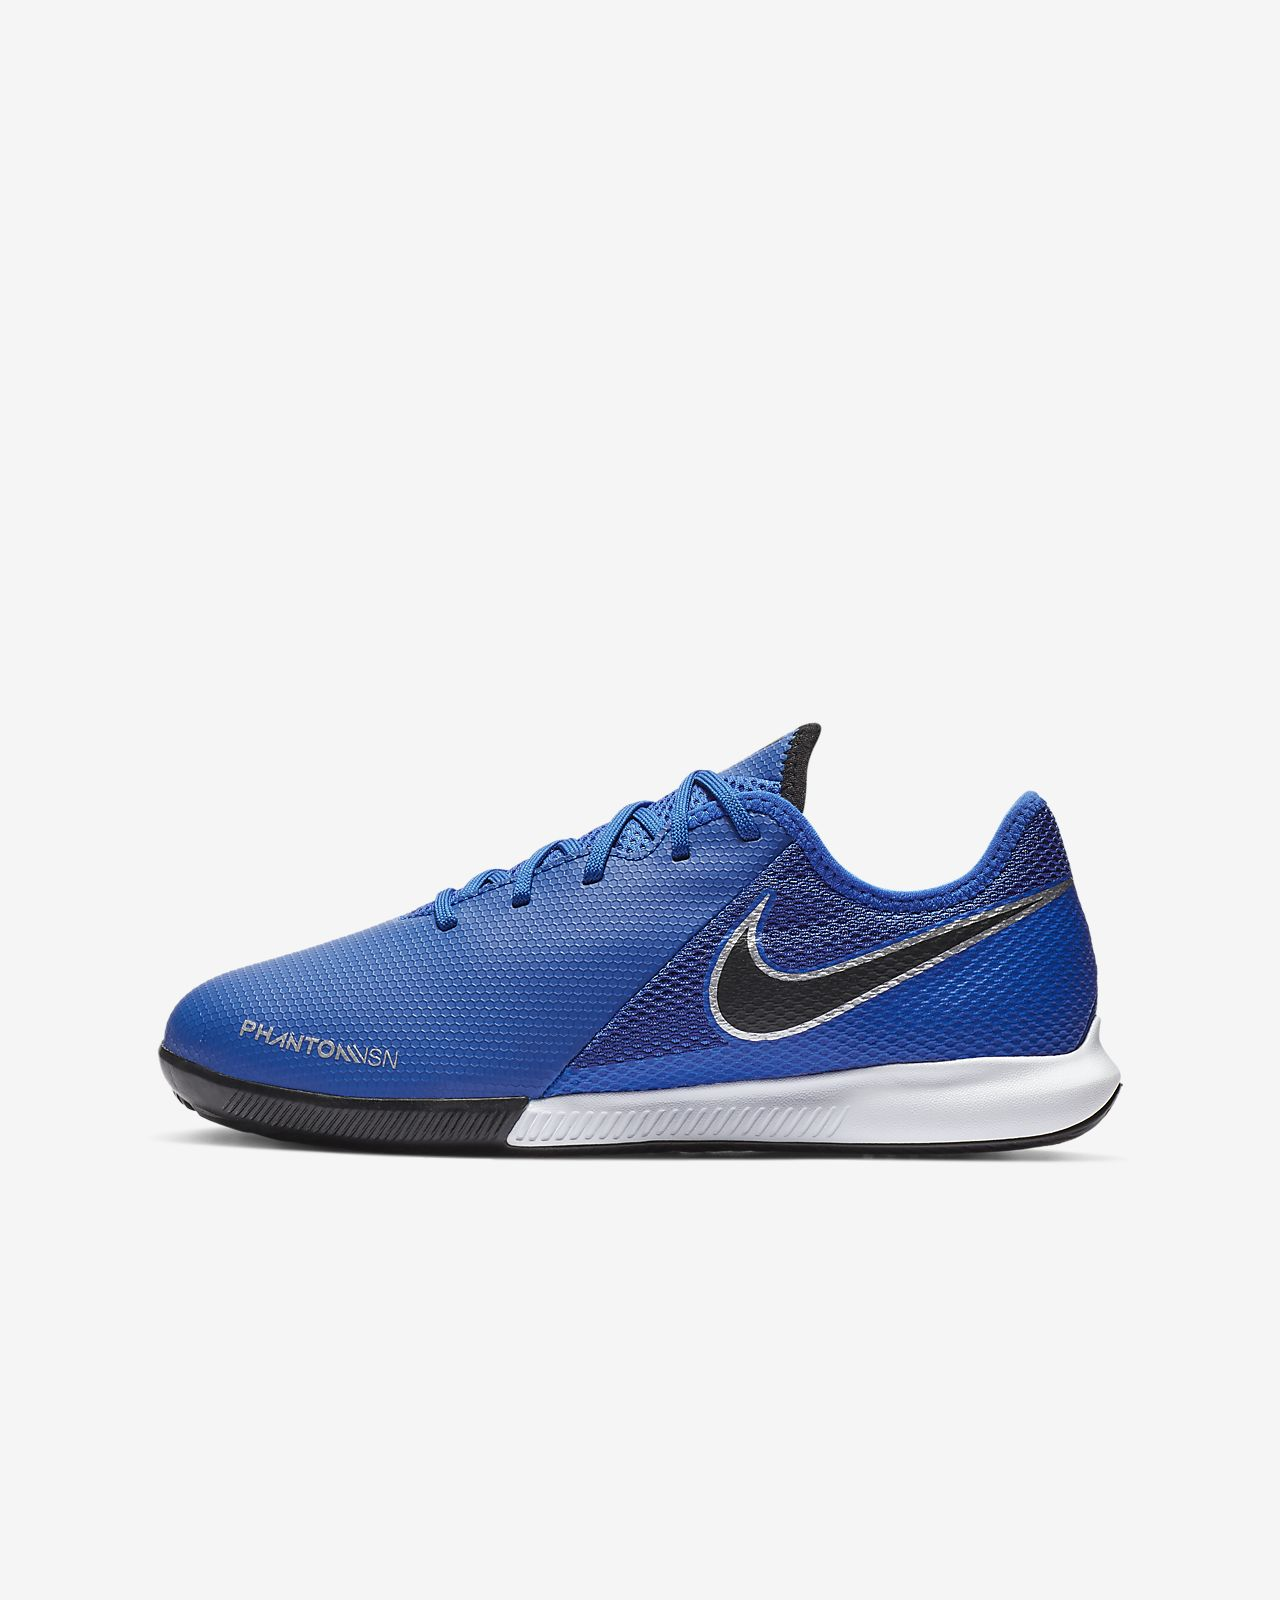 super popular 506f2 dd866 jr-phantomvsn-academy-ic-younger-older-indoor-court-football-shoe-Vj7l2N.jpg